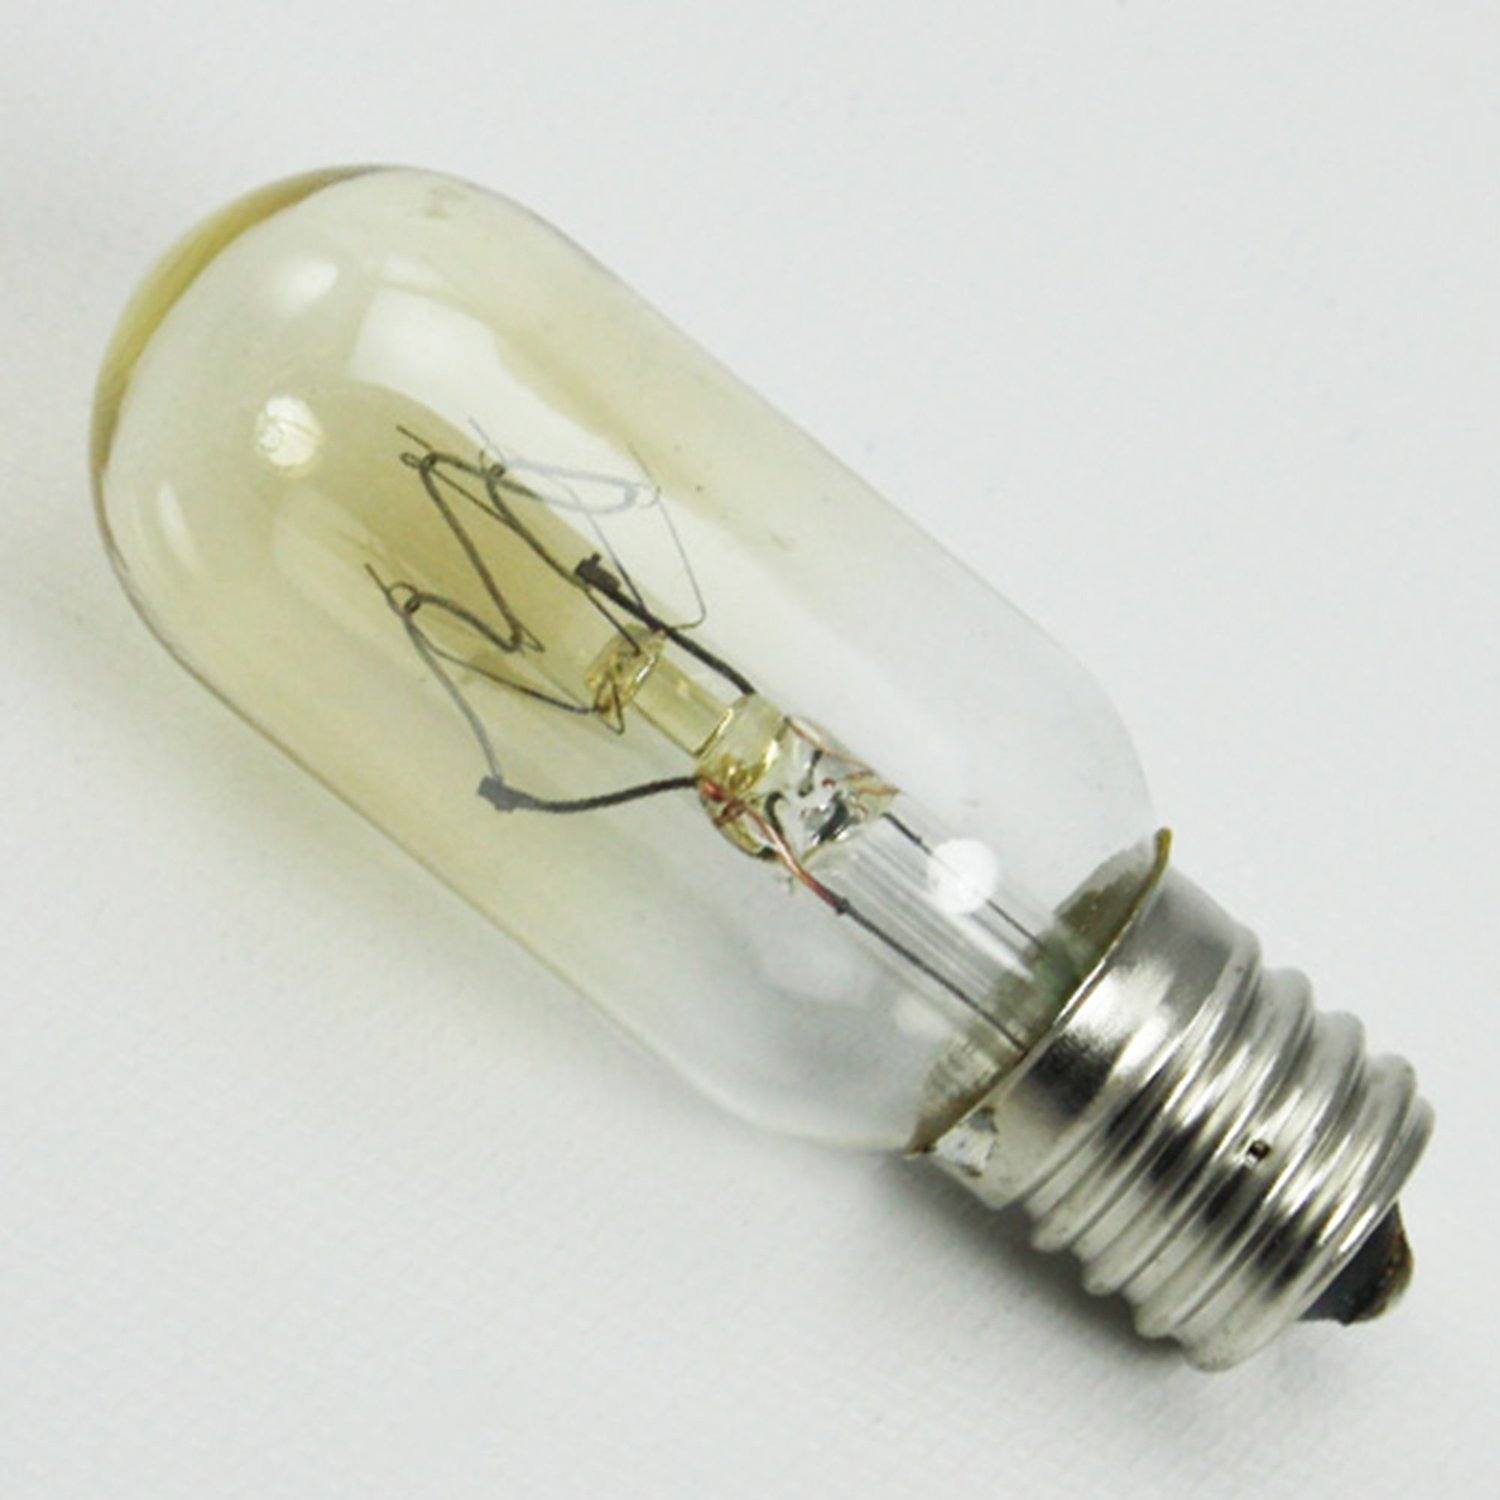 microwave light bulb 130v 40w for ge ap2029997 ps247209 wb36x10003